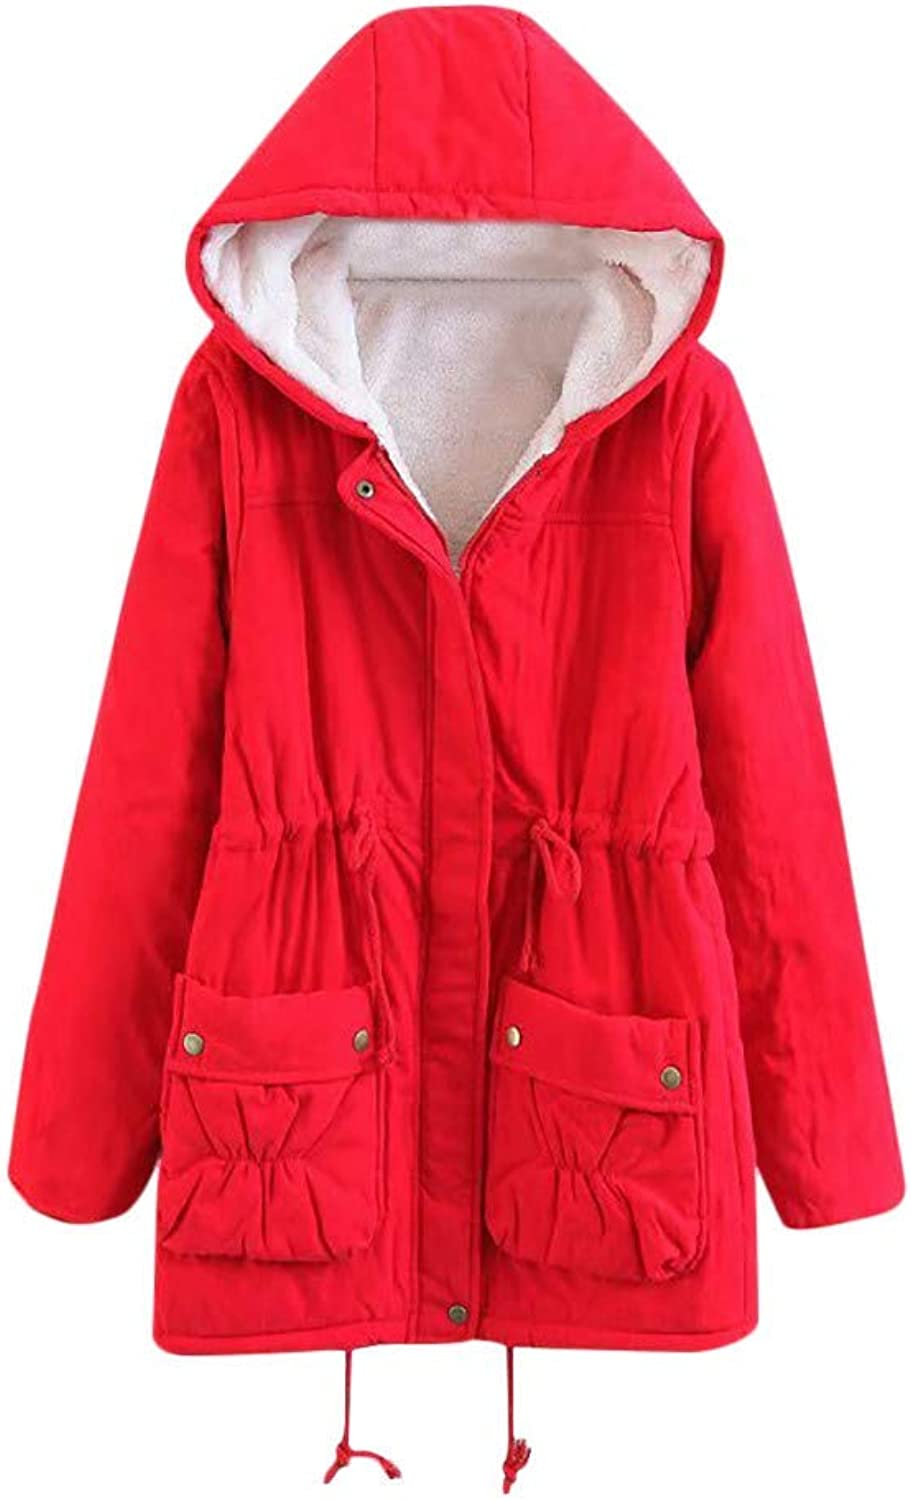 Womens Winter Warm Outwear Solid Stylish Minimalist Atmospheric Comfortable Hooded Pockets Vintage Oversize Coats